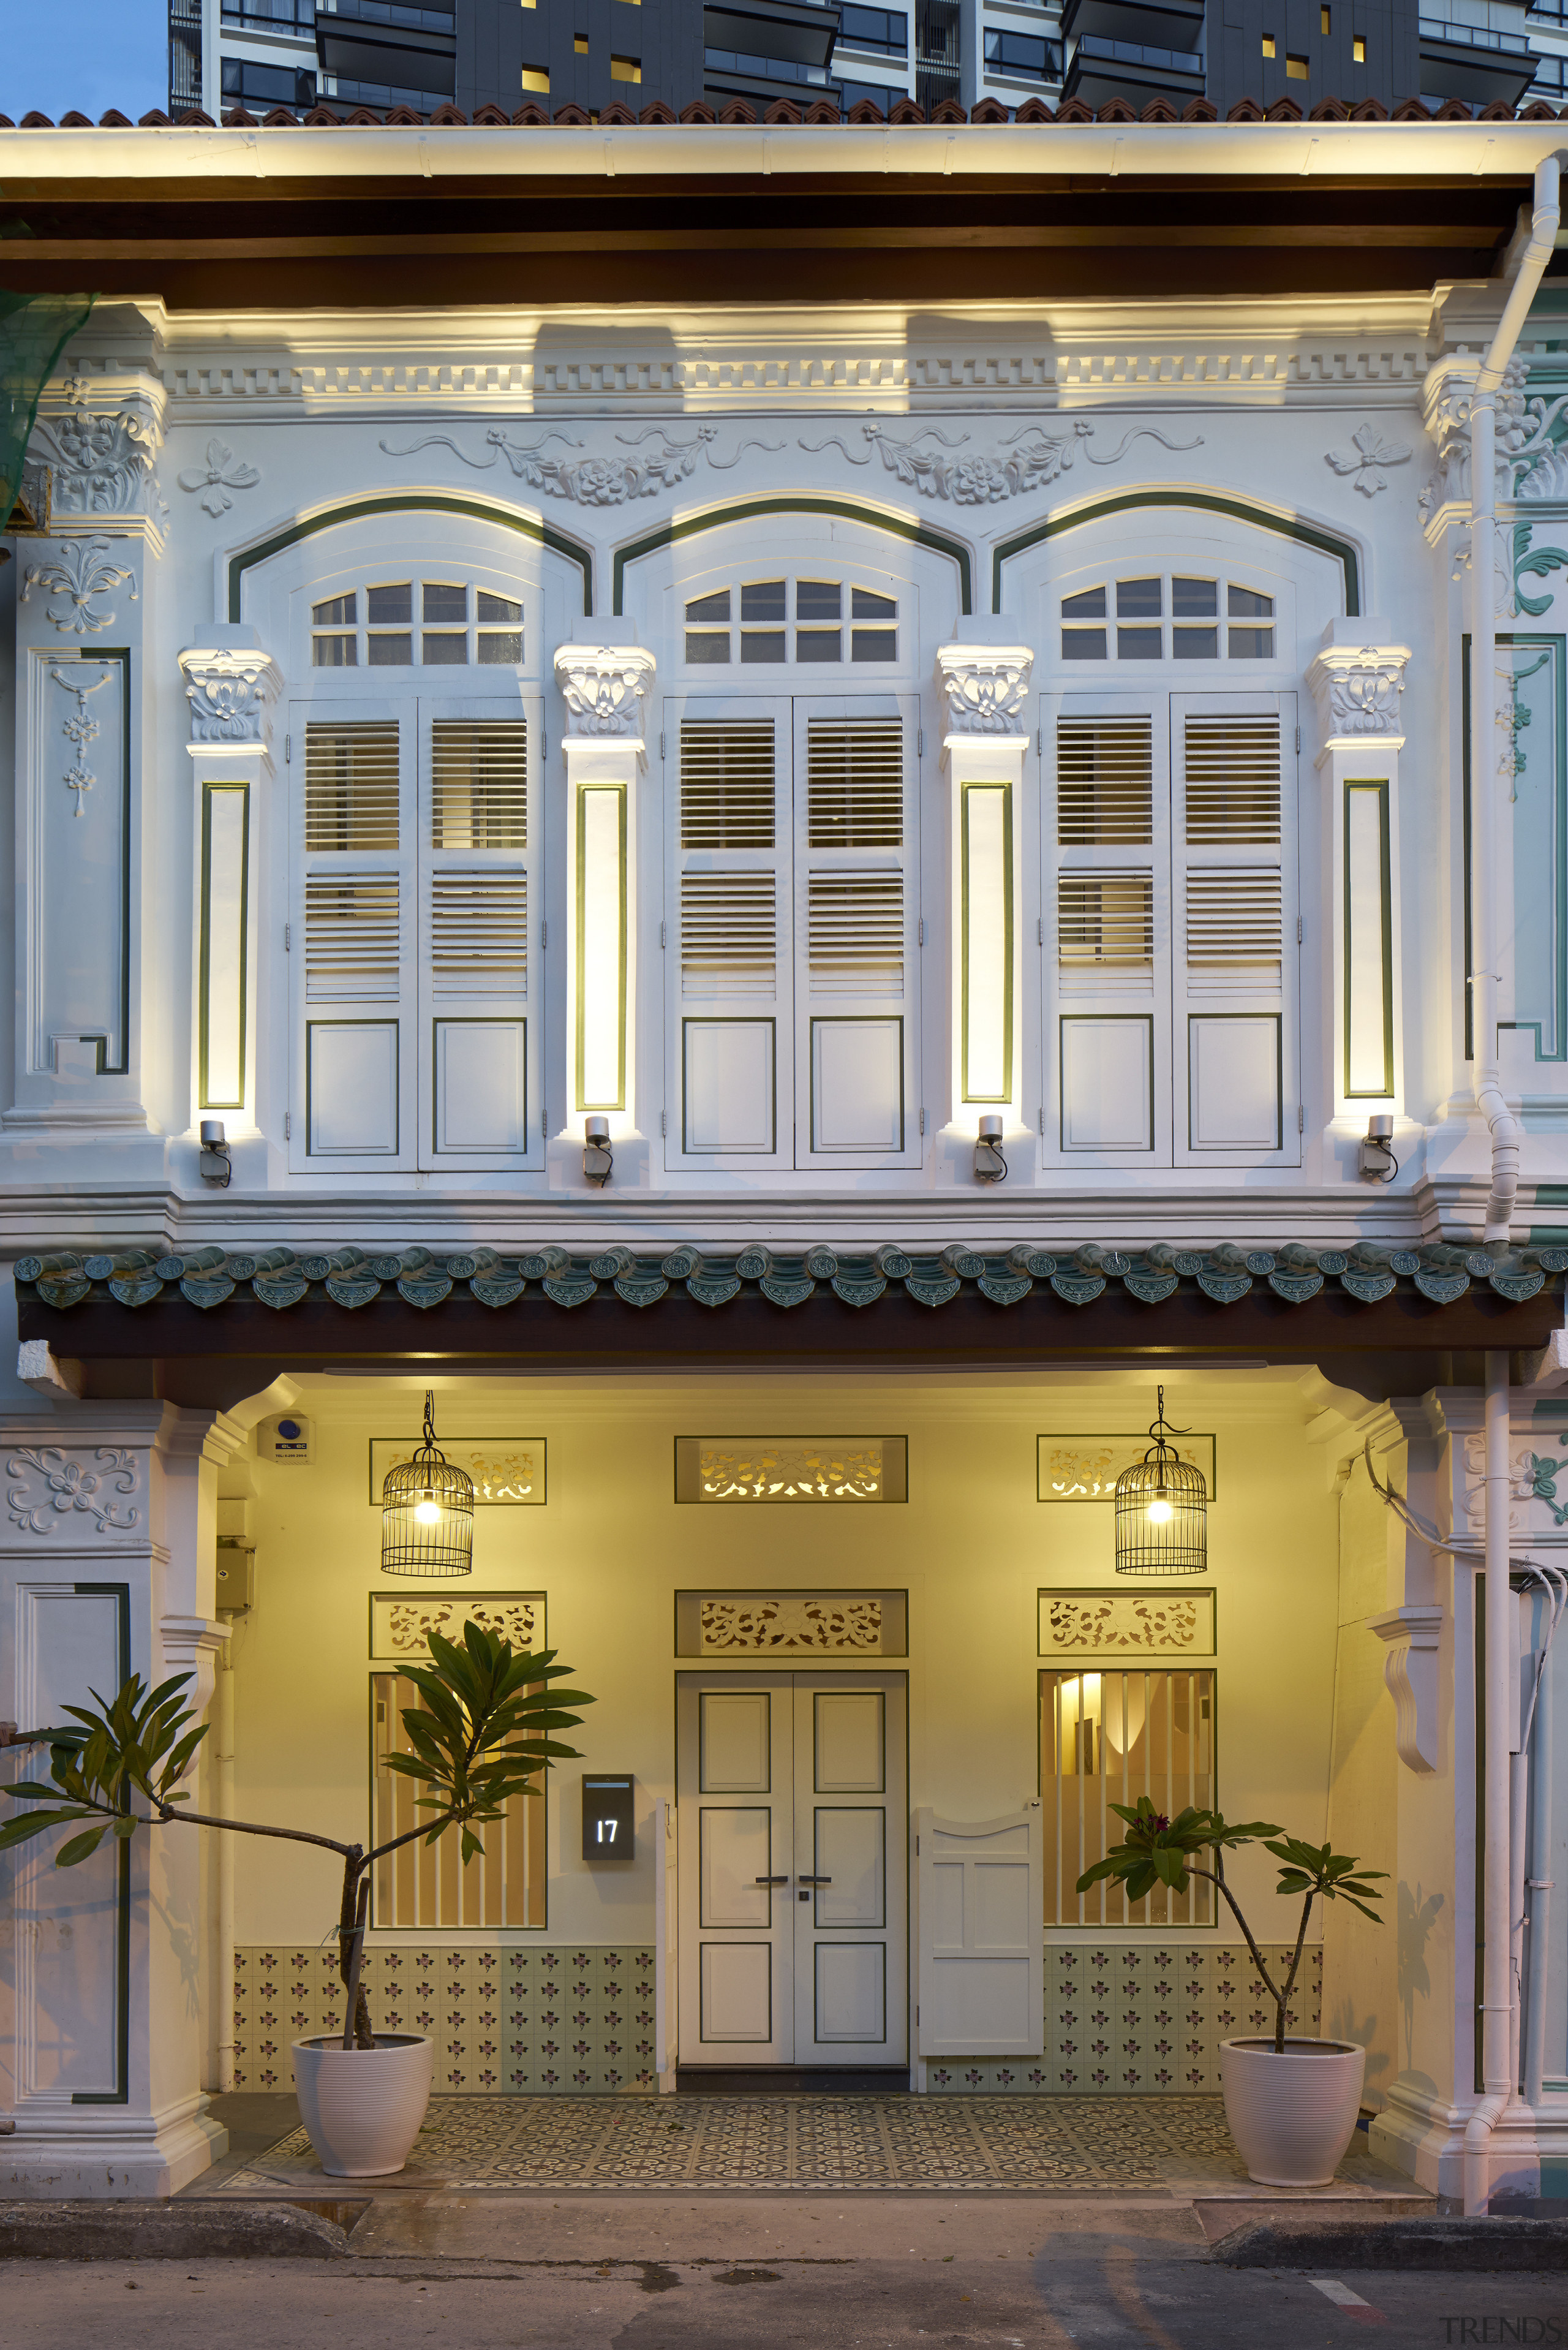 Decorative cornices, capitals, fanlights and enamel-finished dado tiles architecture, balcony, building, facade, home, house, mixed use, real estate, window, gray